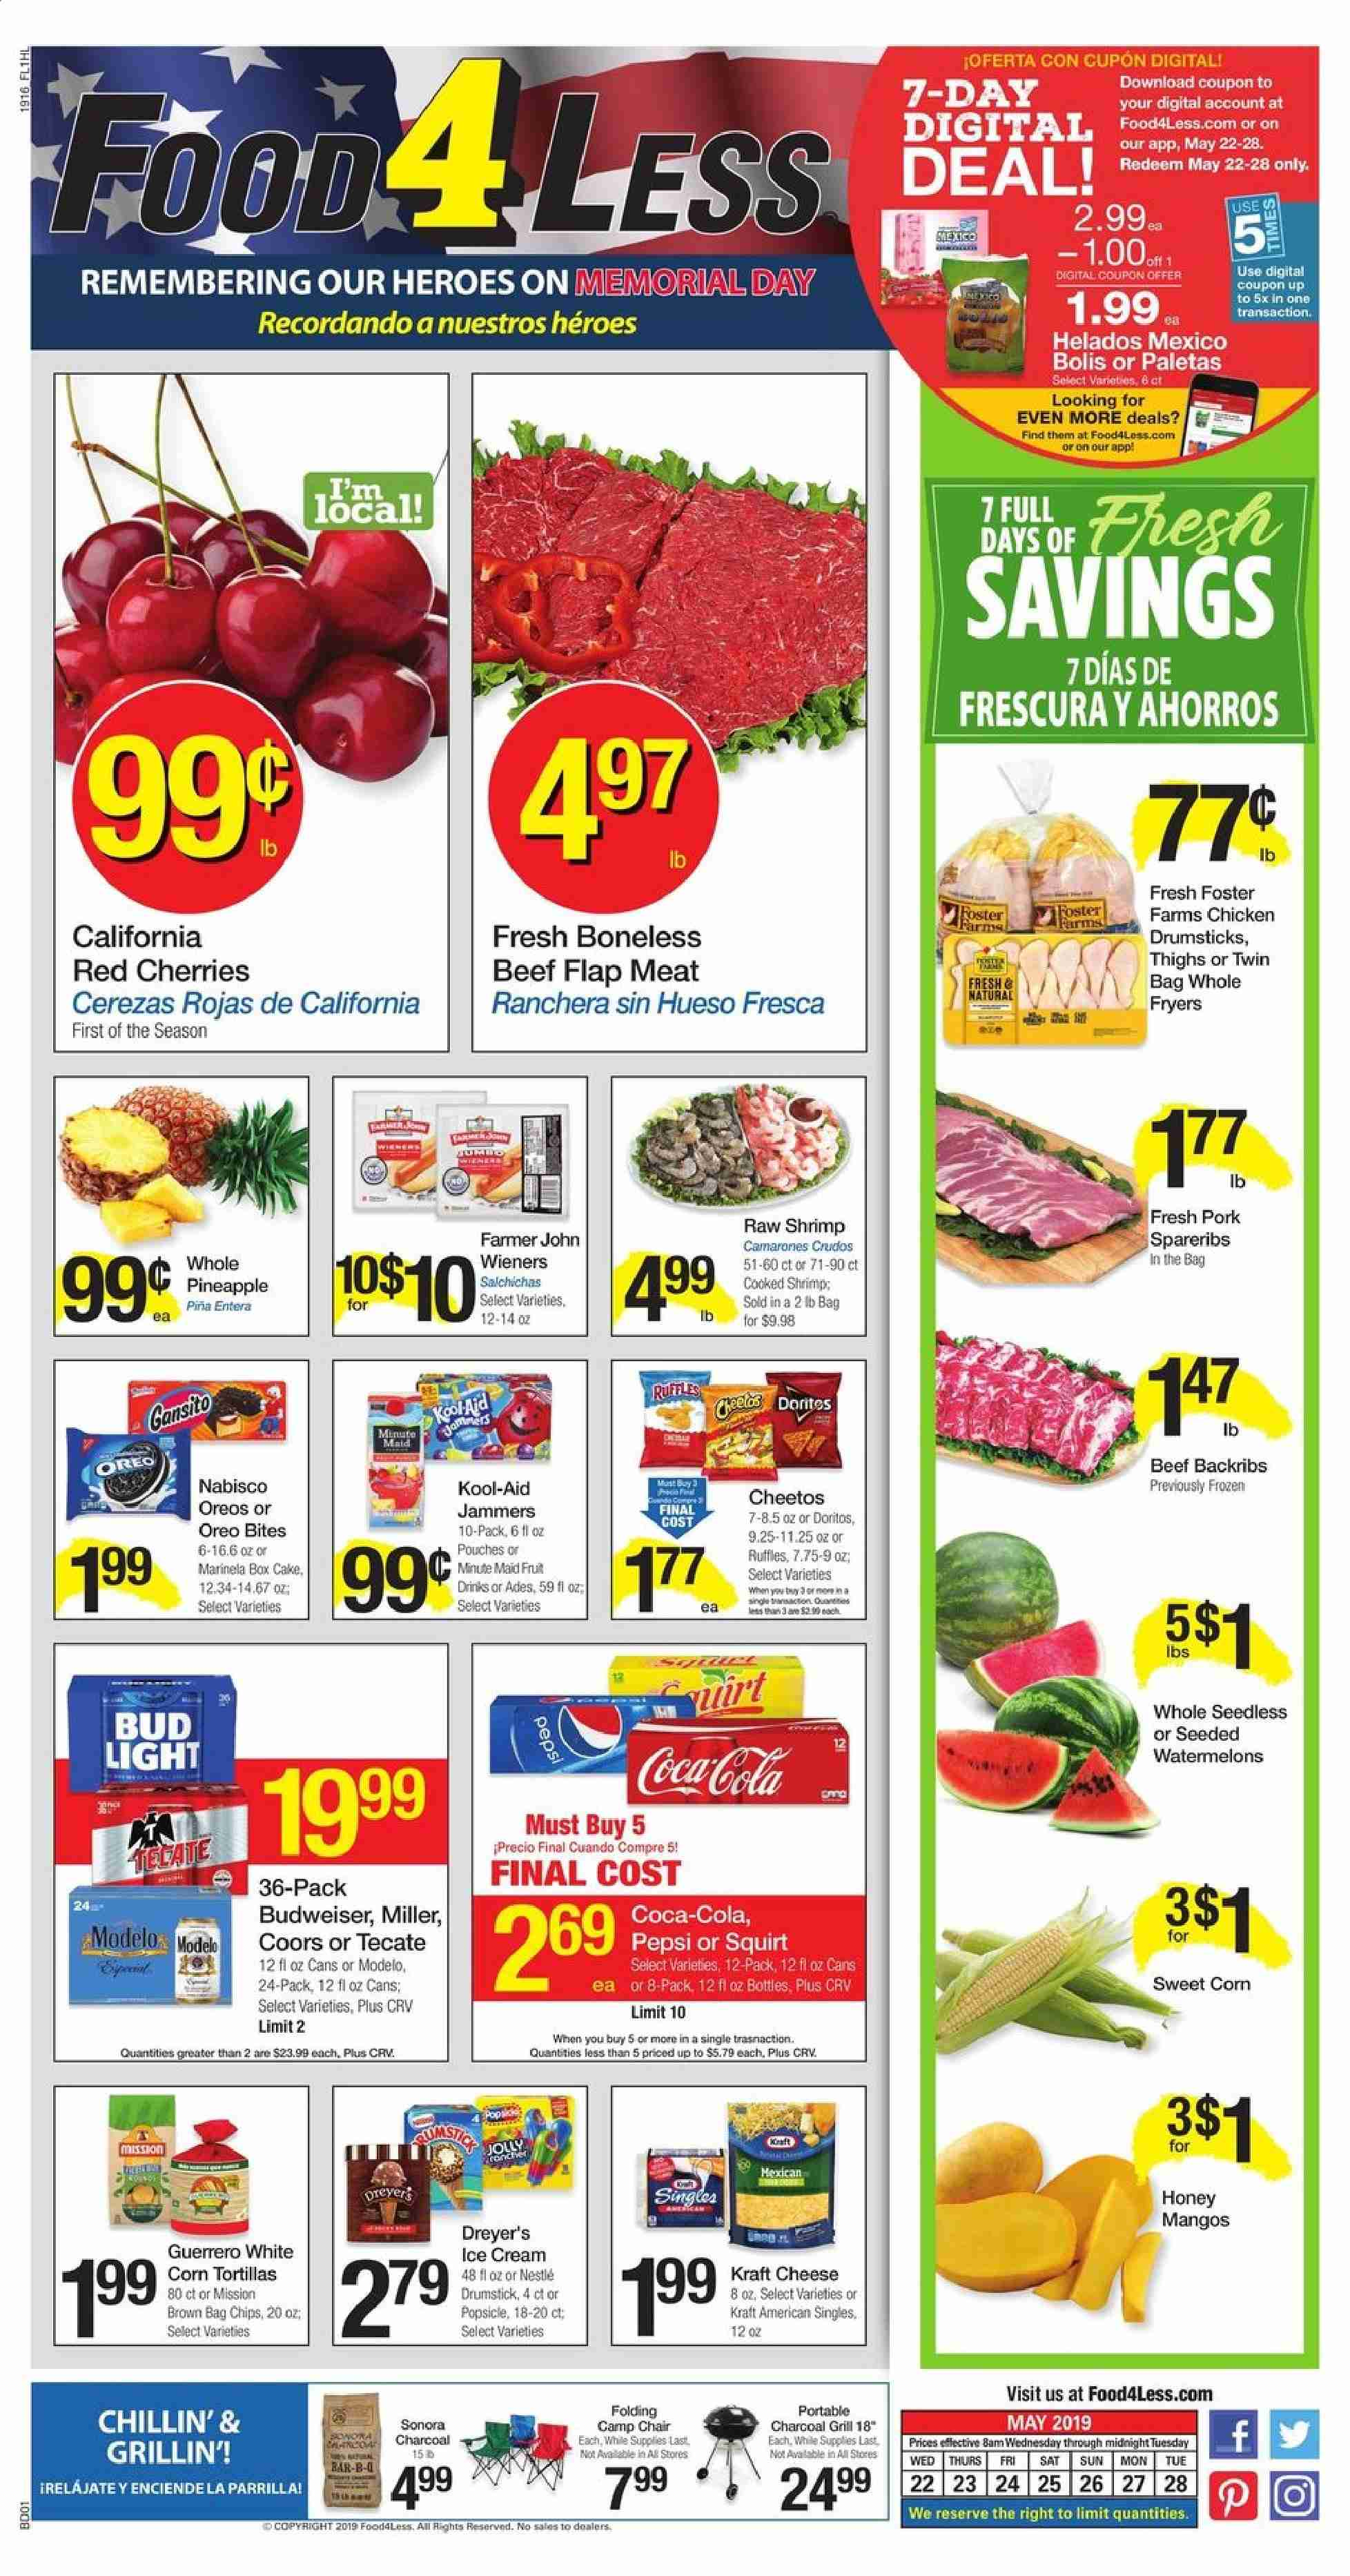 Food 4 Less Flyer - 05.22.2019 - 05.28.2019 - Sales products - Budweiser, Bud Light, Coors, chair, corn, mango, cherries, tortillas, cake, shrimps, cheese, Oreo, Nestlé, corn tortillas, Doritos, Cheetos, chips, honey, Coca-Cola, chicken, chicken legs, beef meat, pork meat, box, grill, charcoal, pin. Page 1.